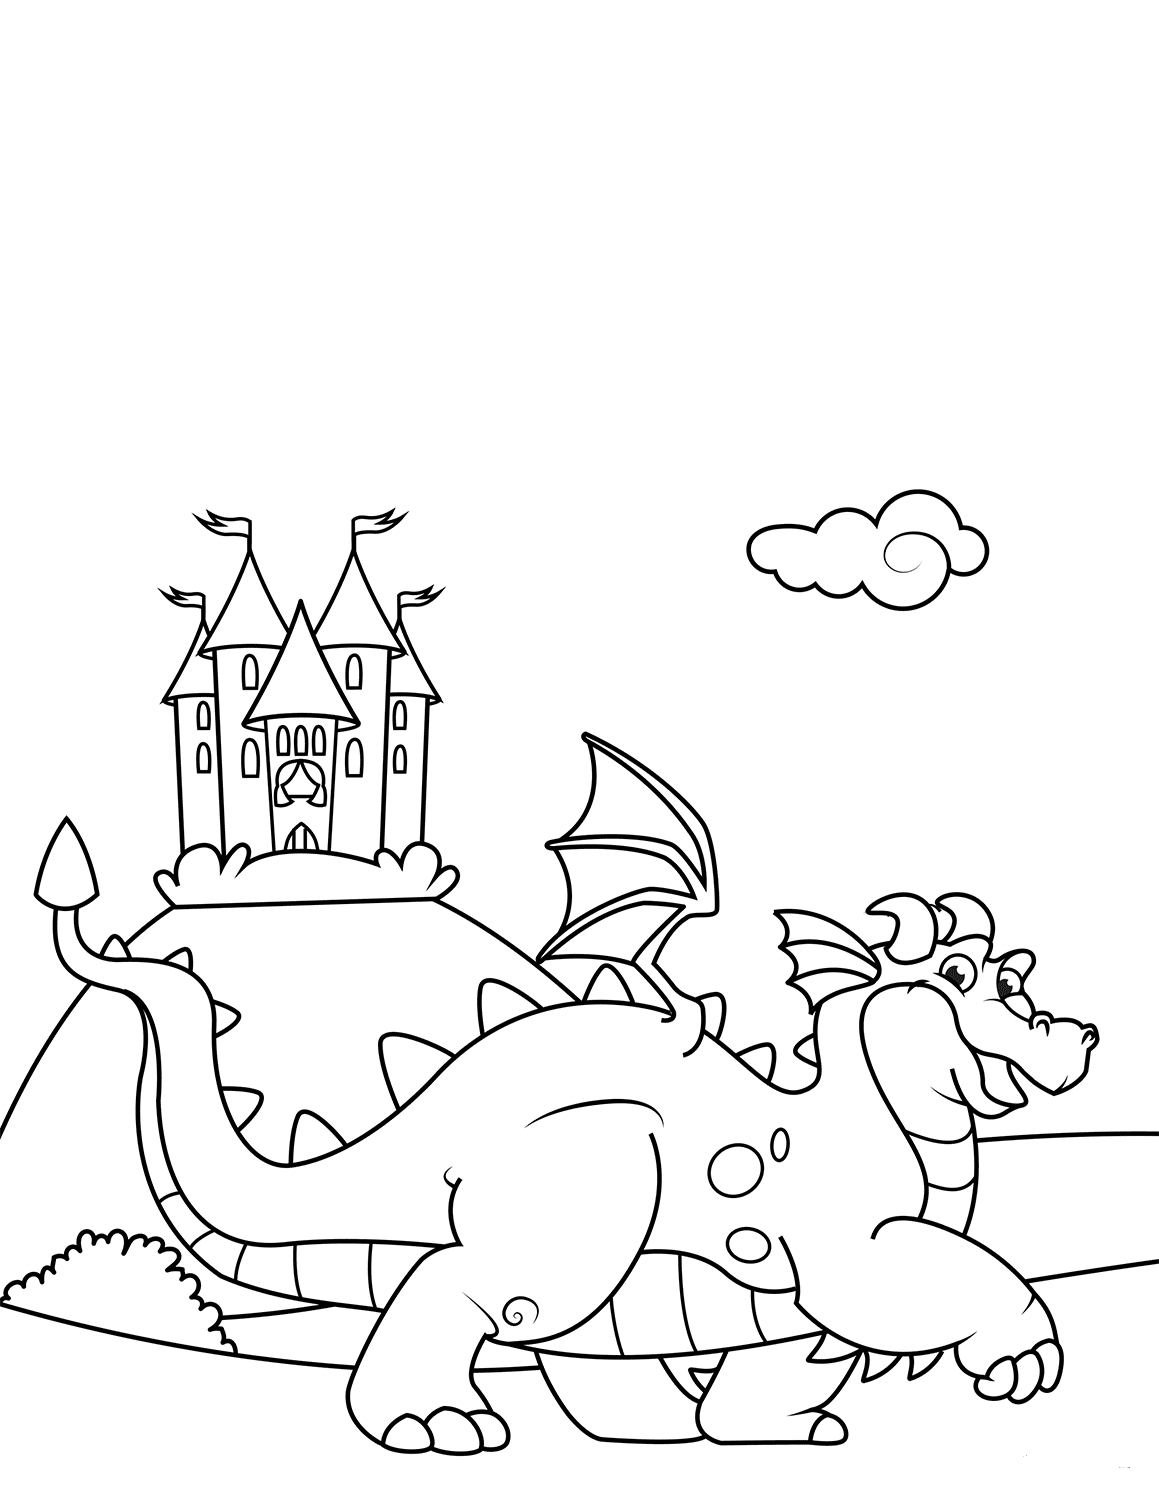 Dragon And Castle Coloring Pages